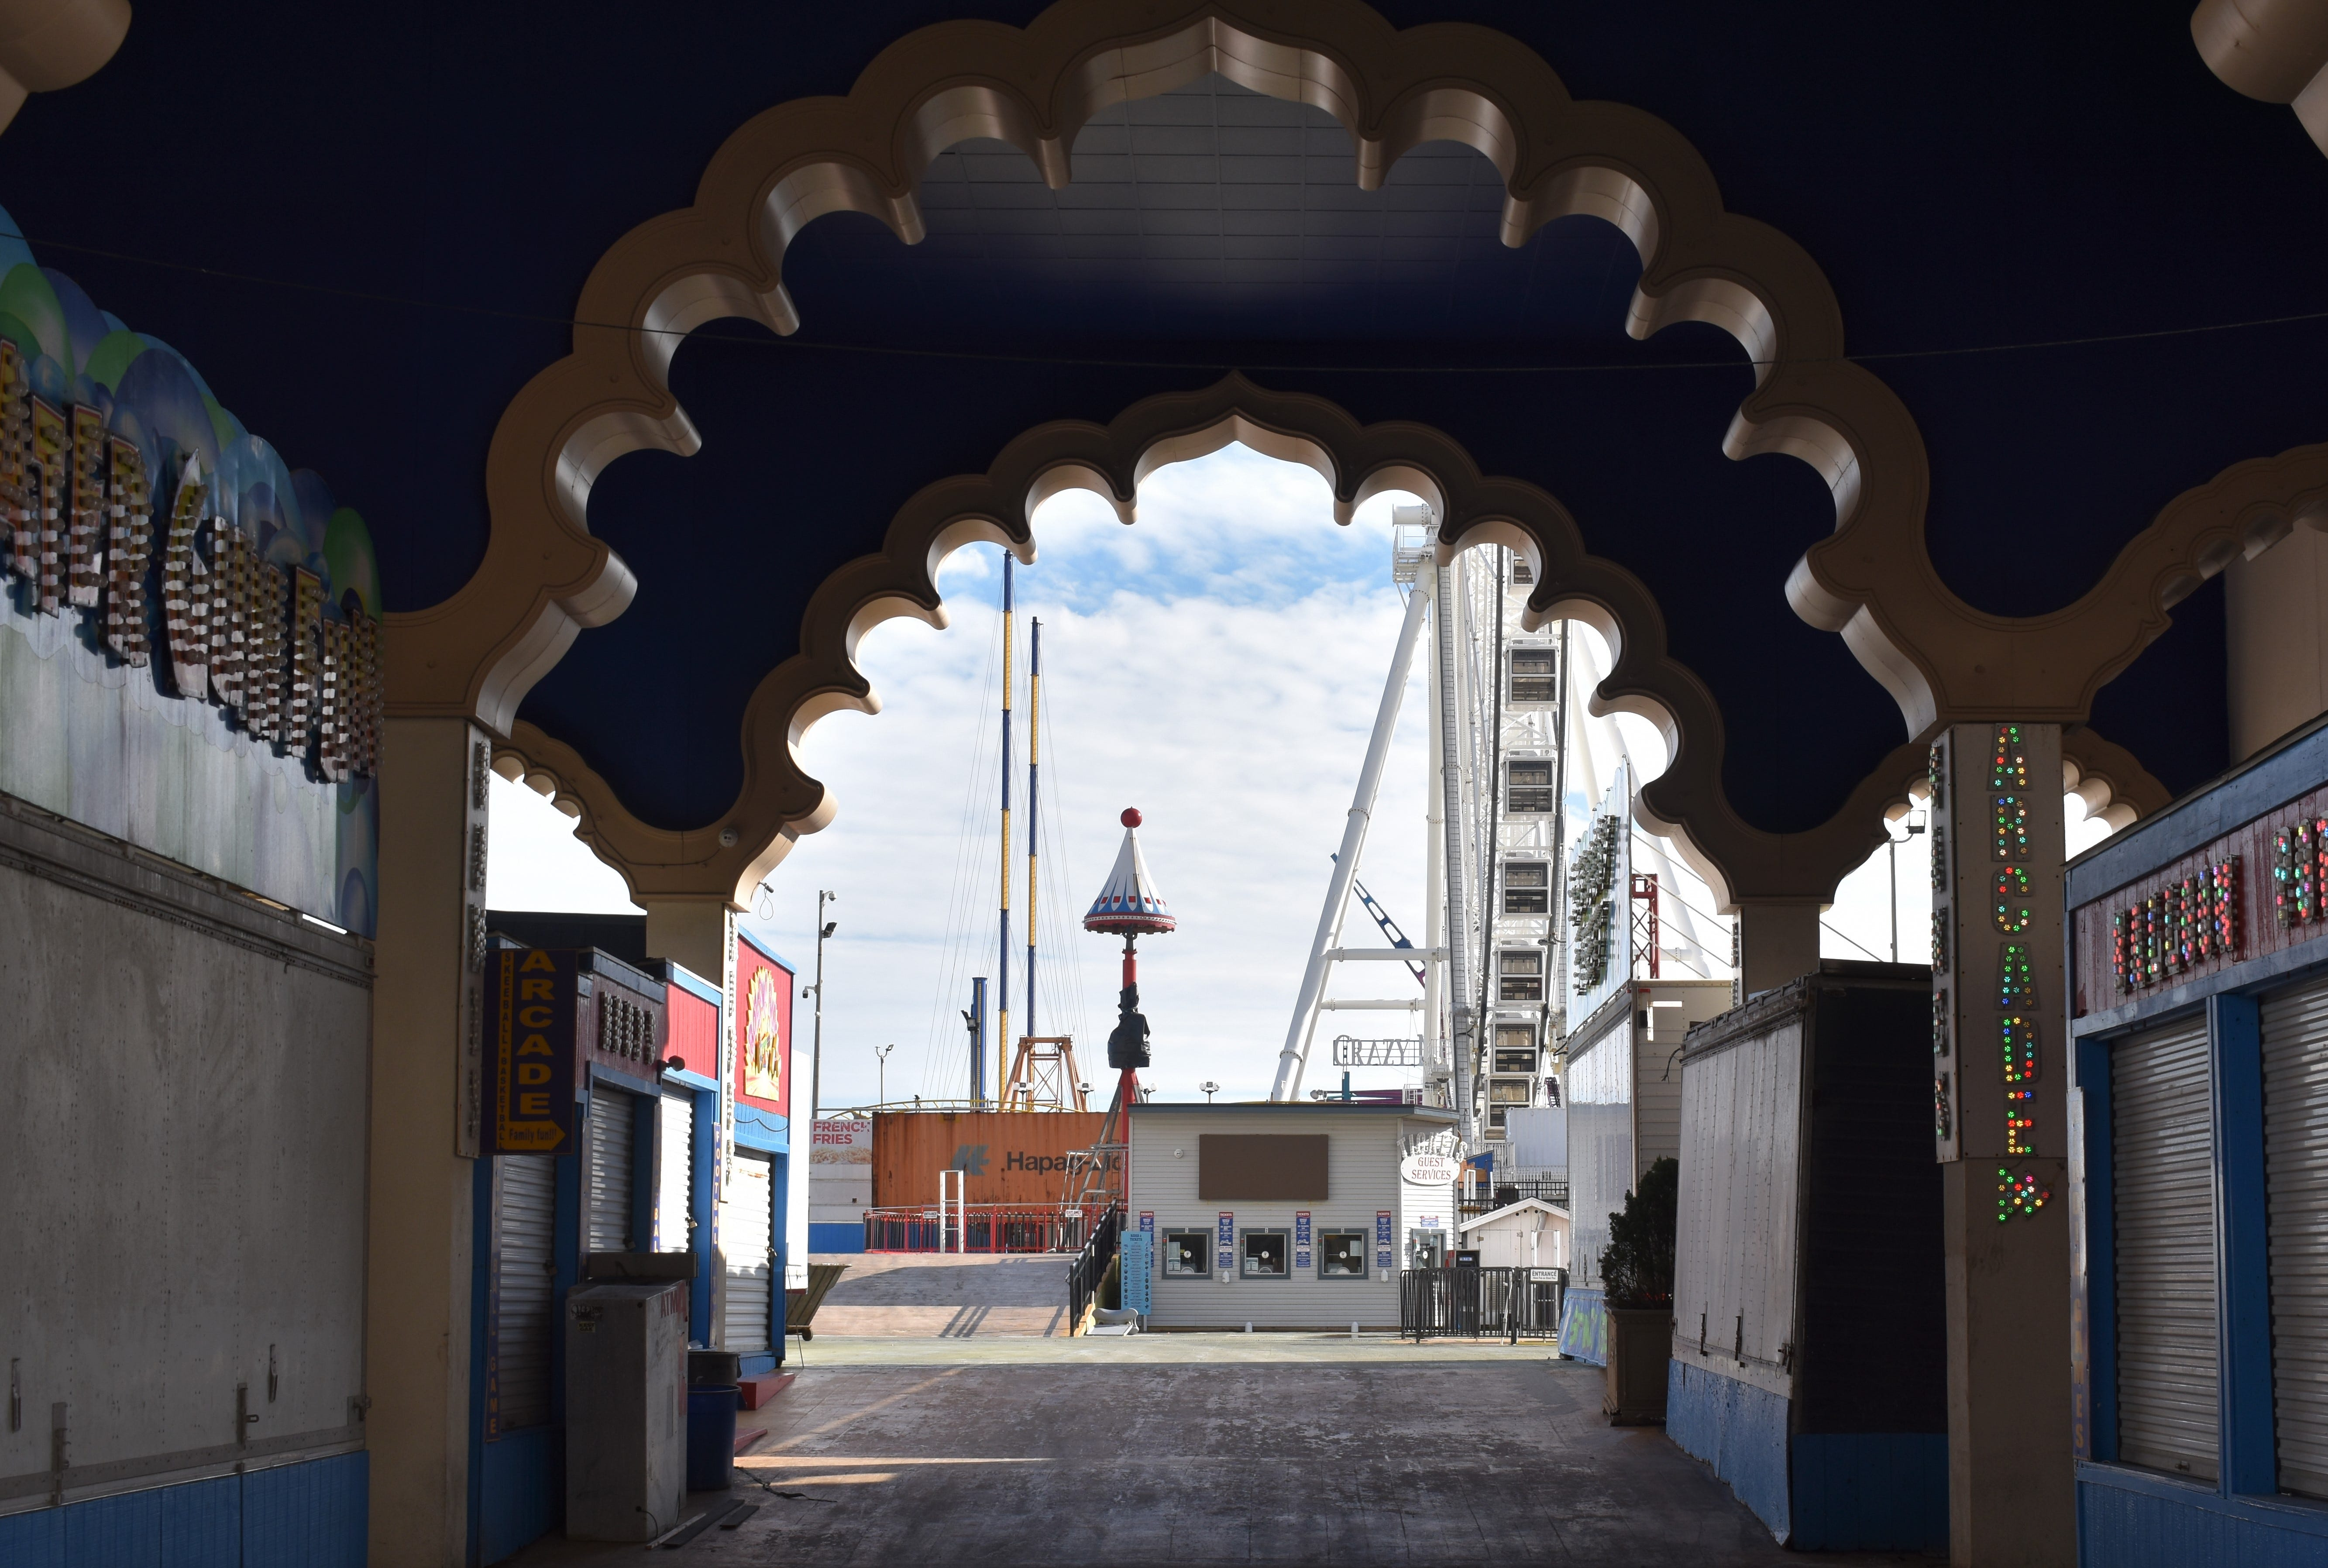 A decorative arch leading to Steel Pier in Atlantic City shows design elements from the former Trump Taj Mahal.